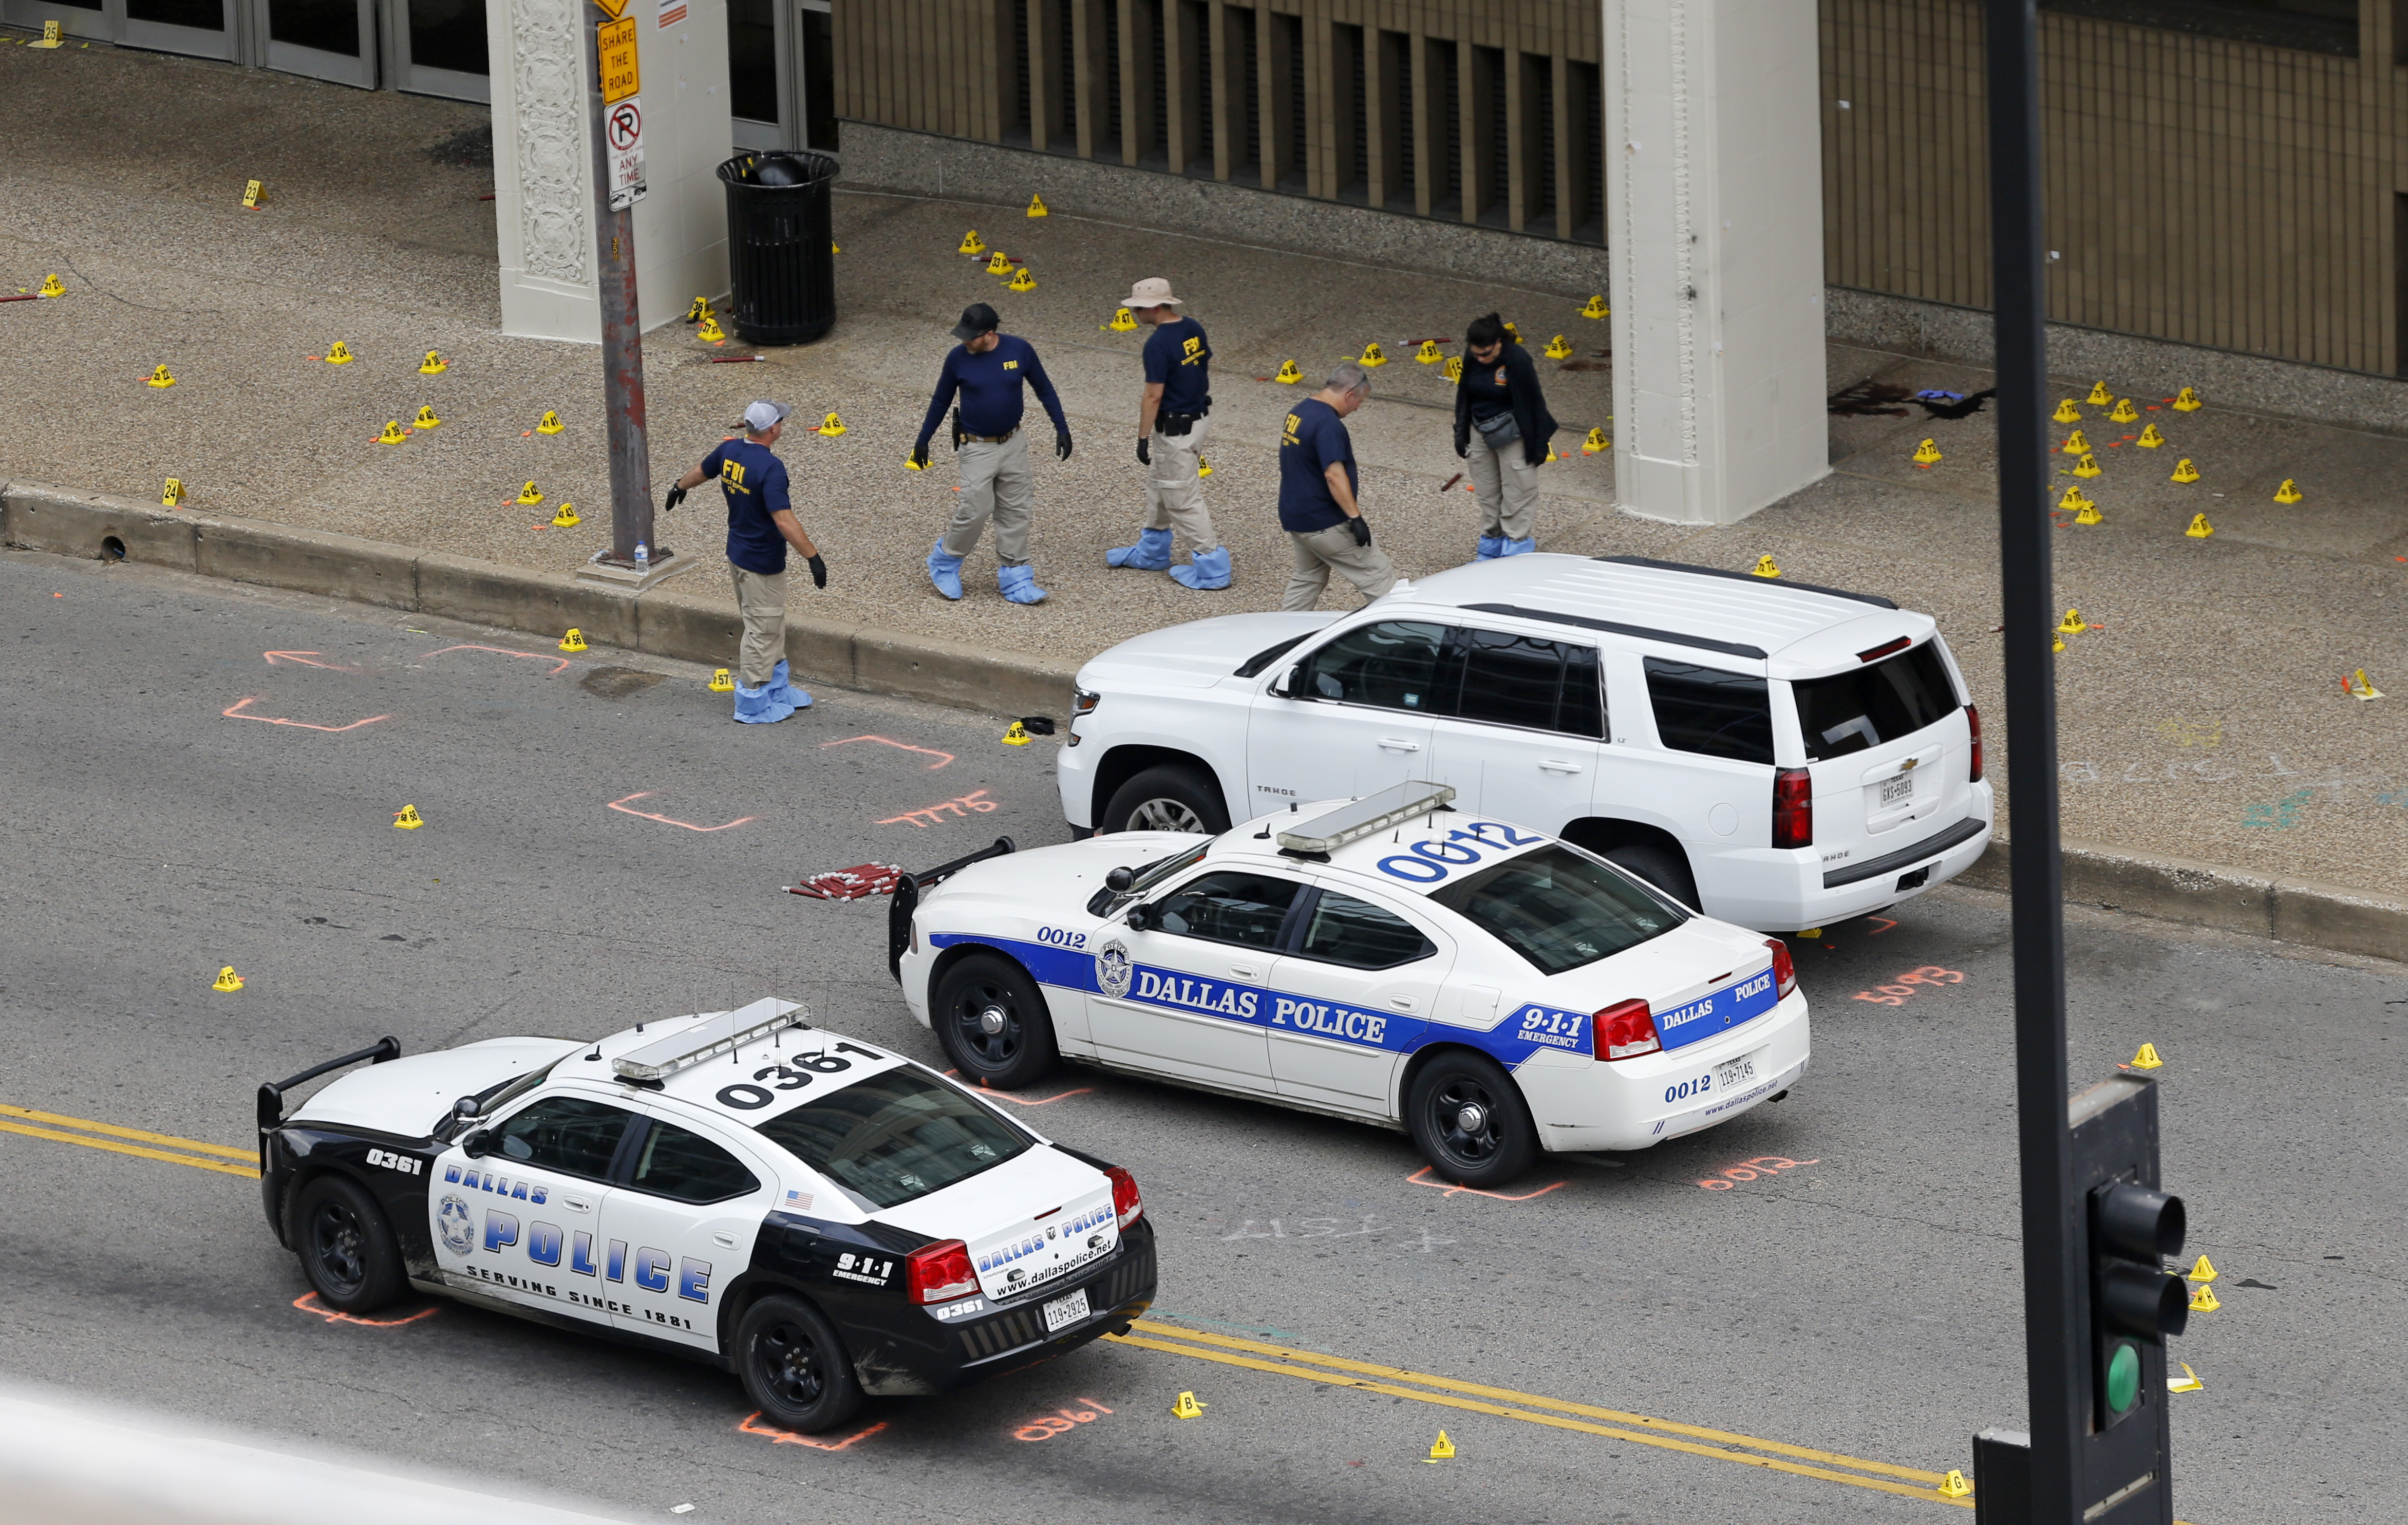 Members of an FBI evidence response team work at the scene of the attack on police officers in Dallas, Saturday, July 9, 2016. A peaceful protest over the recent videotaped shootings of black men by police turned violent Thursday night as gunman Micah Johnson fatally shot several officers. (AP Photo/Gerald Herbert)